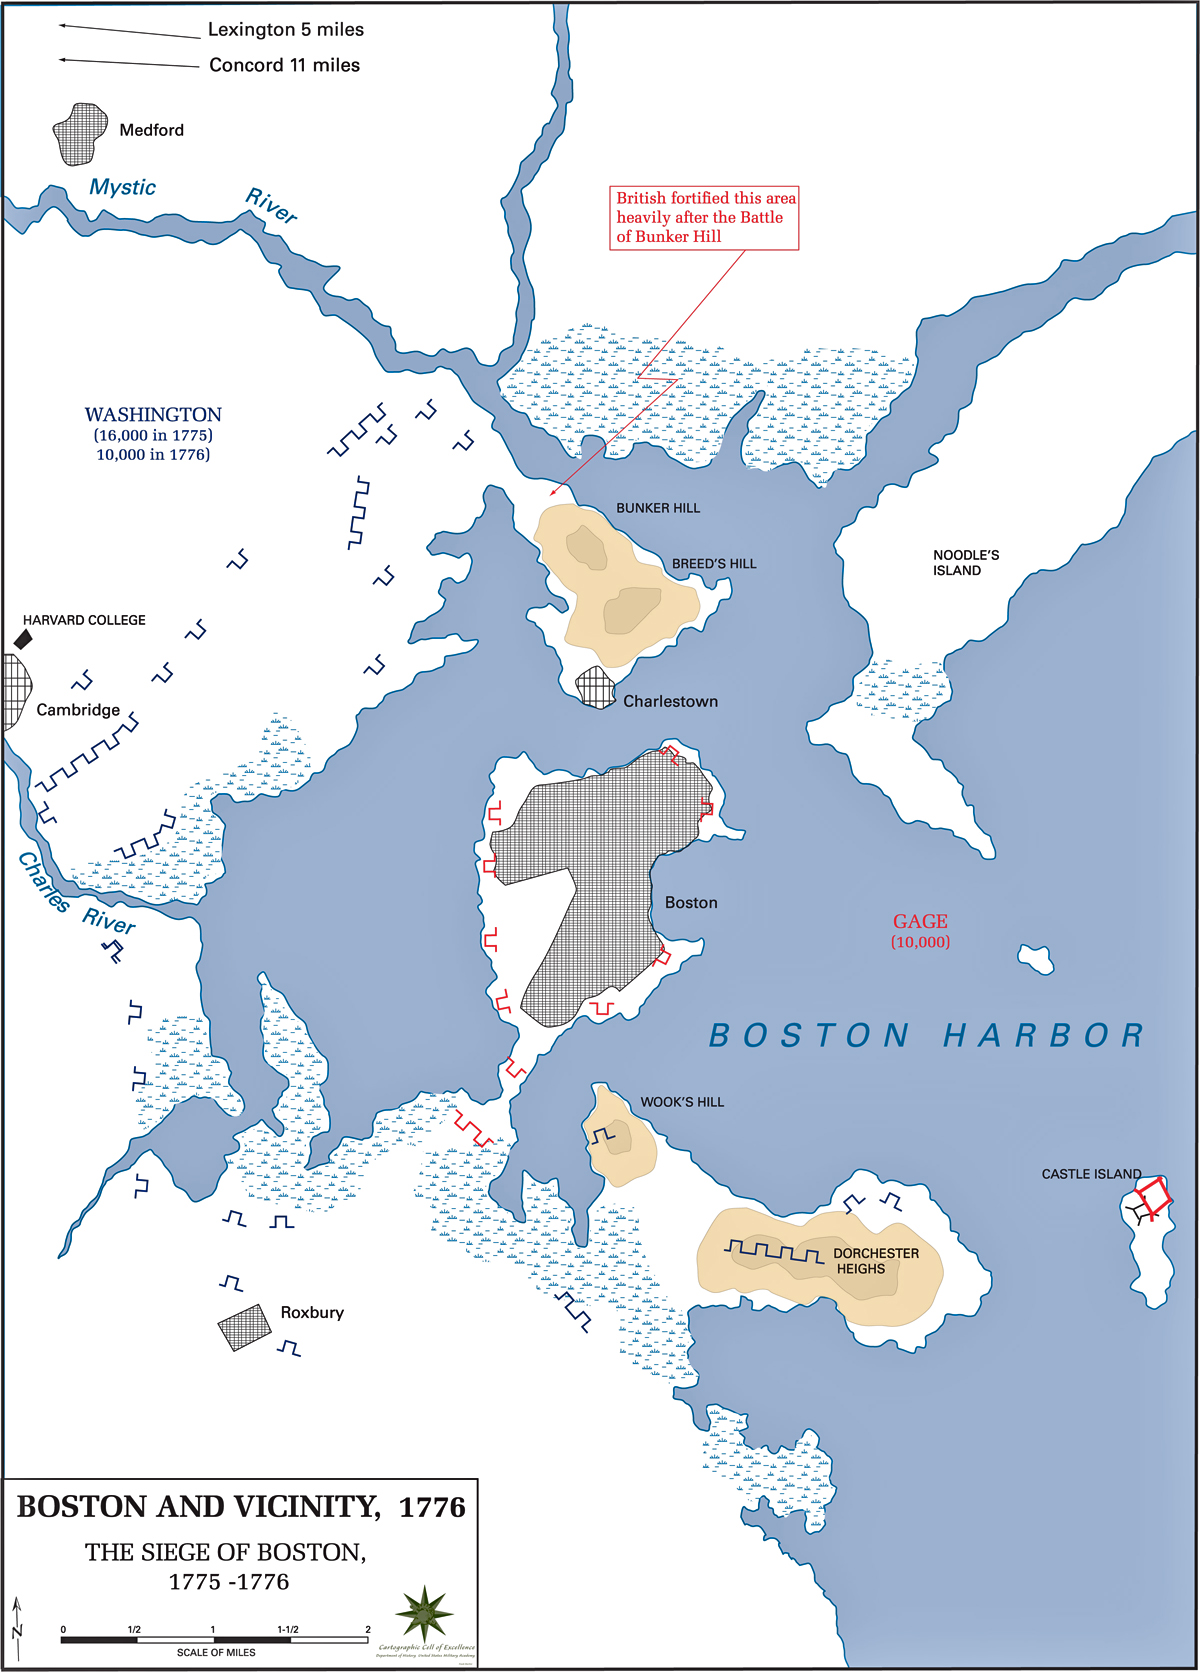 Map of the Siege of Boston 1776